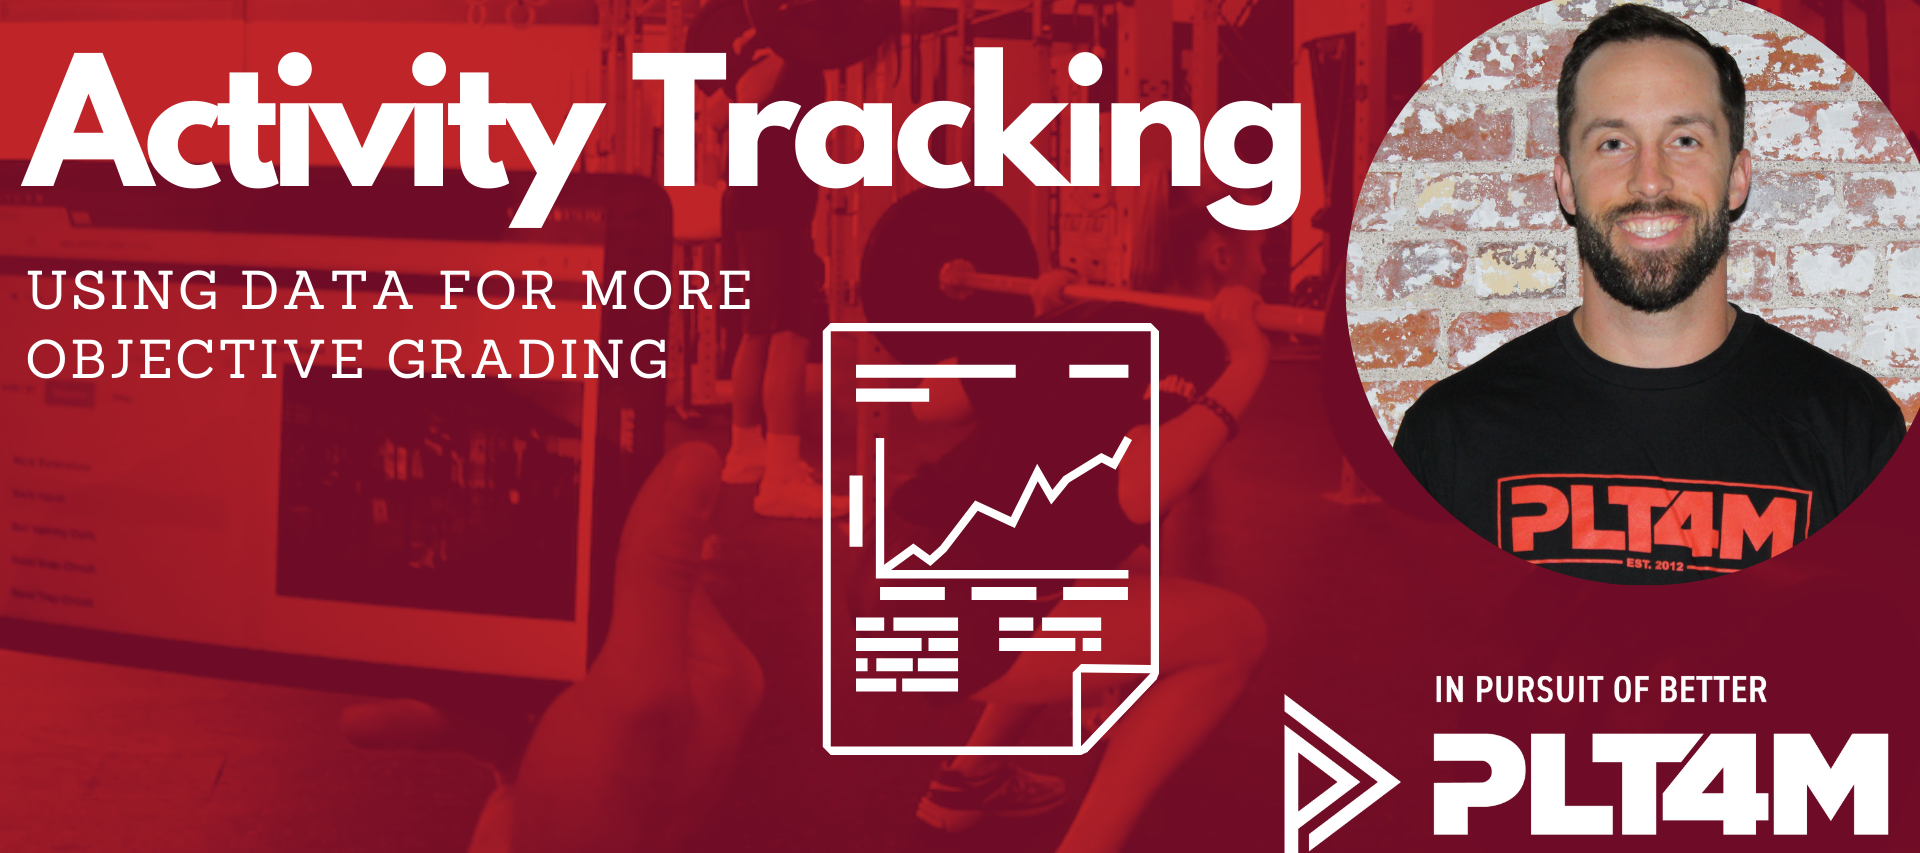 Activity Tracking in PLT4M